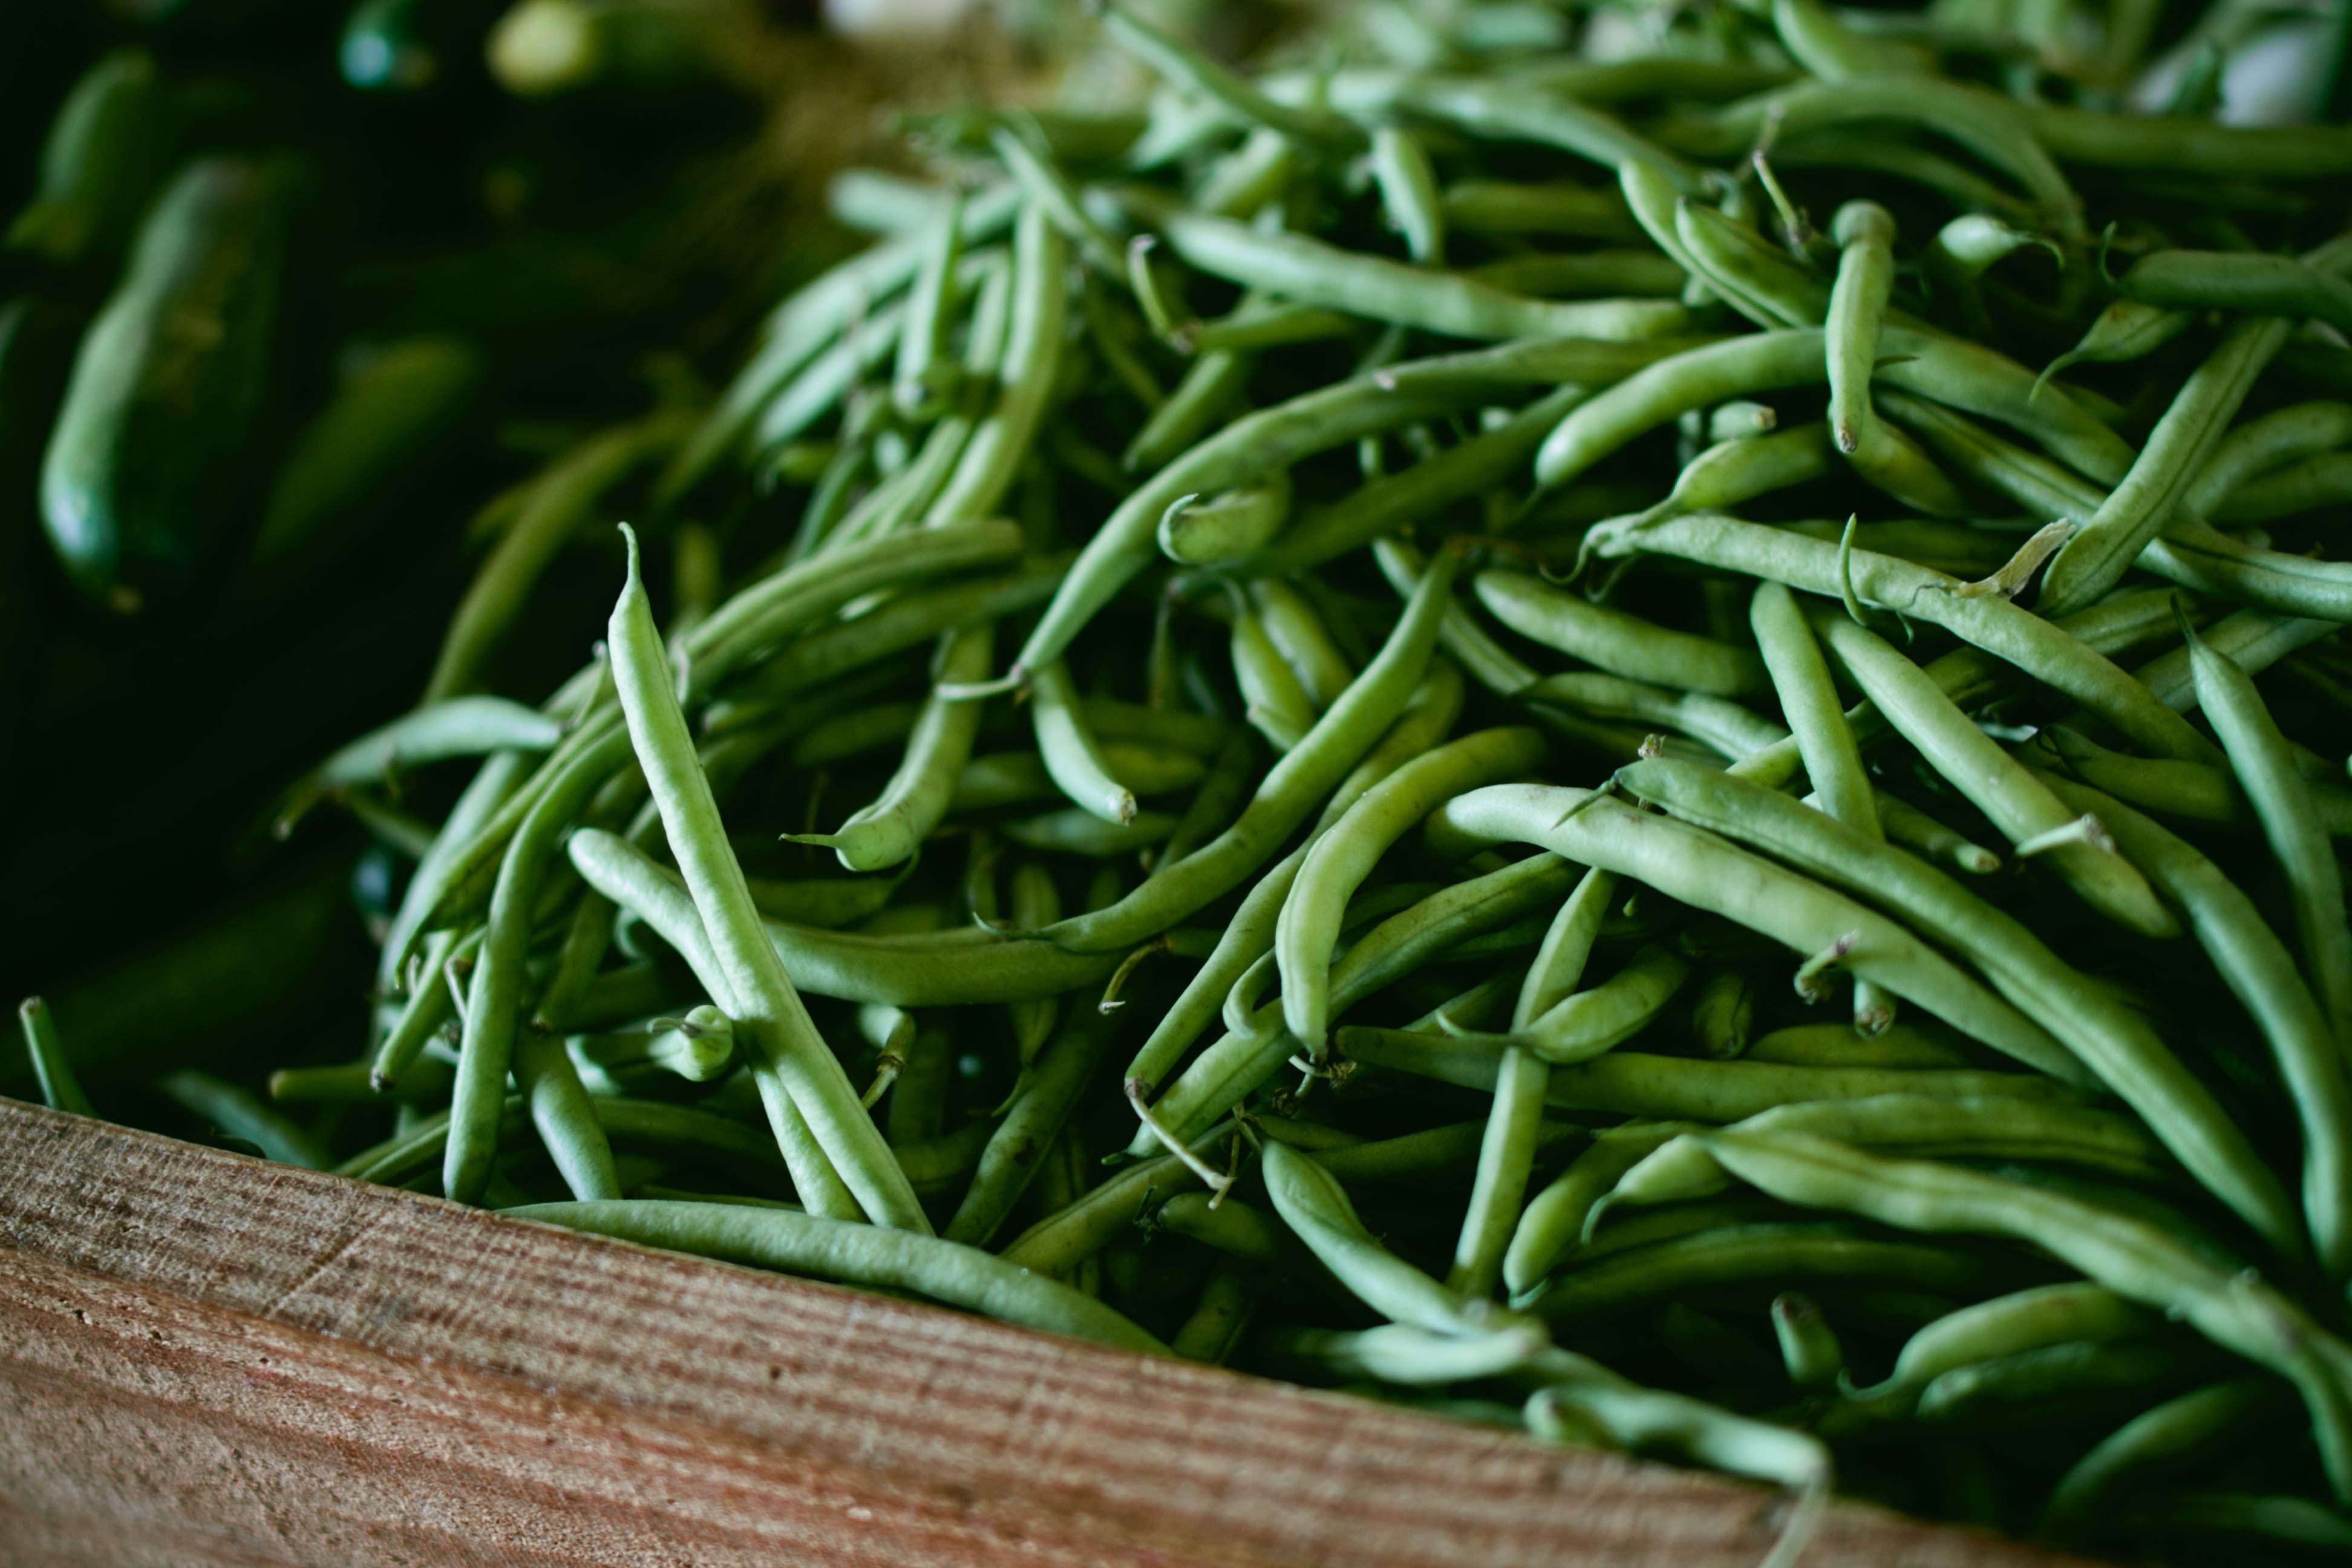 Basket of fresh green beans at a vegetable market